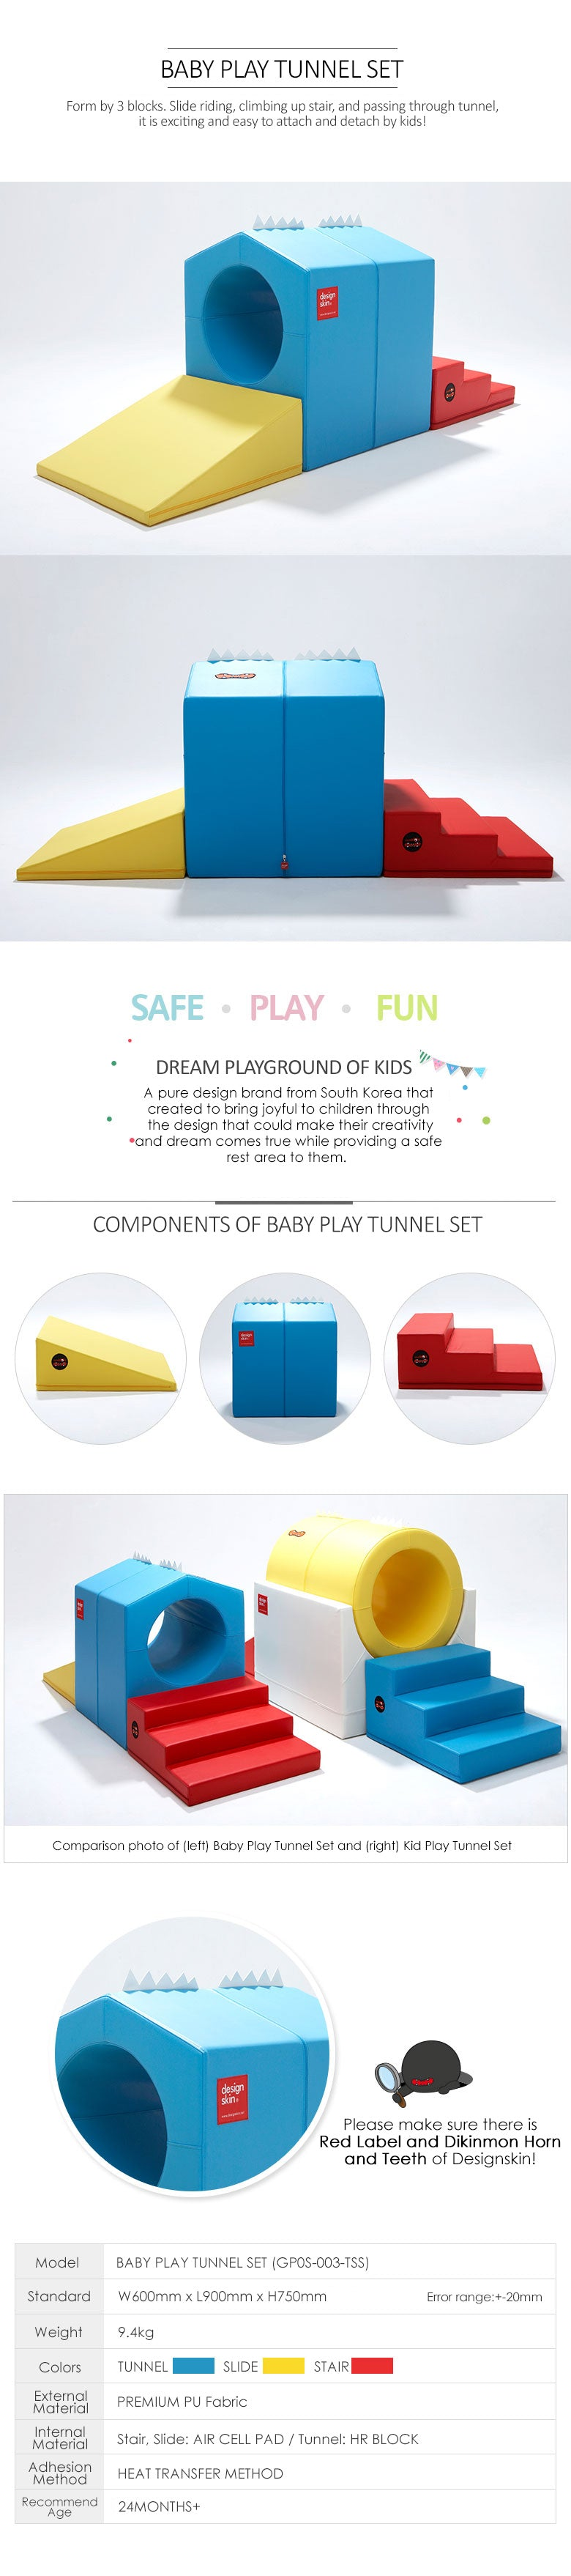 baby play tunnel set designskin